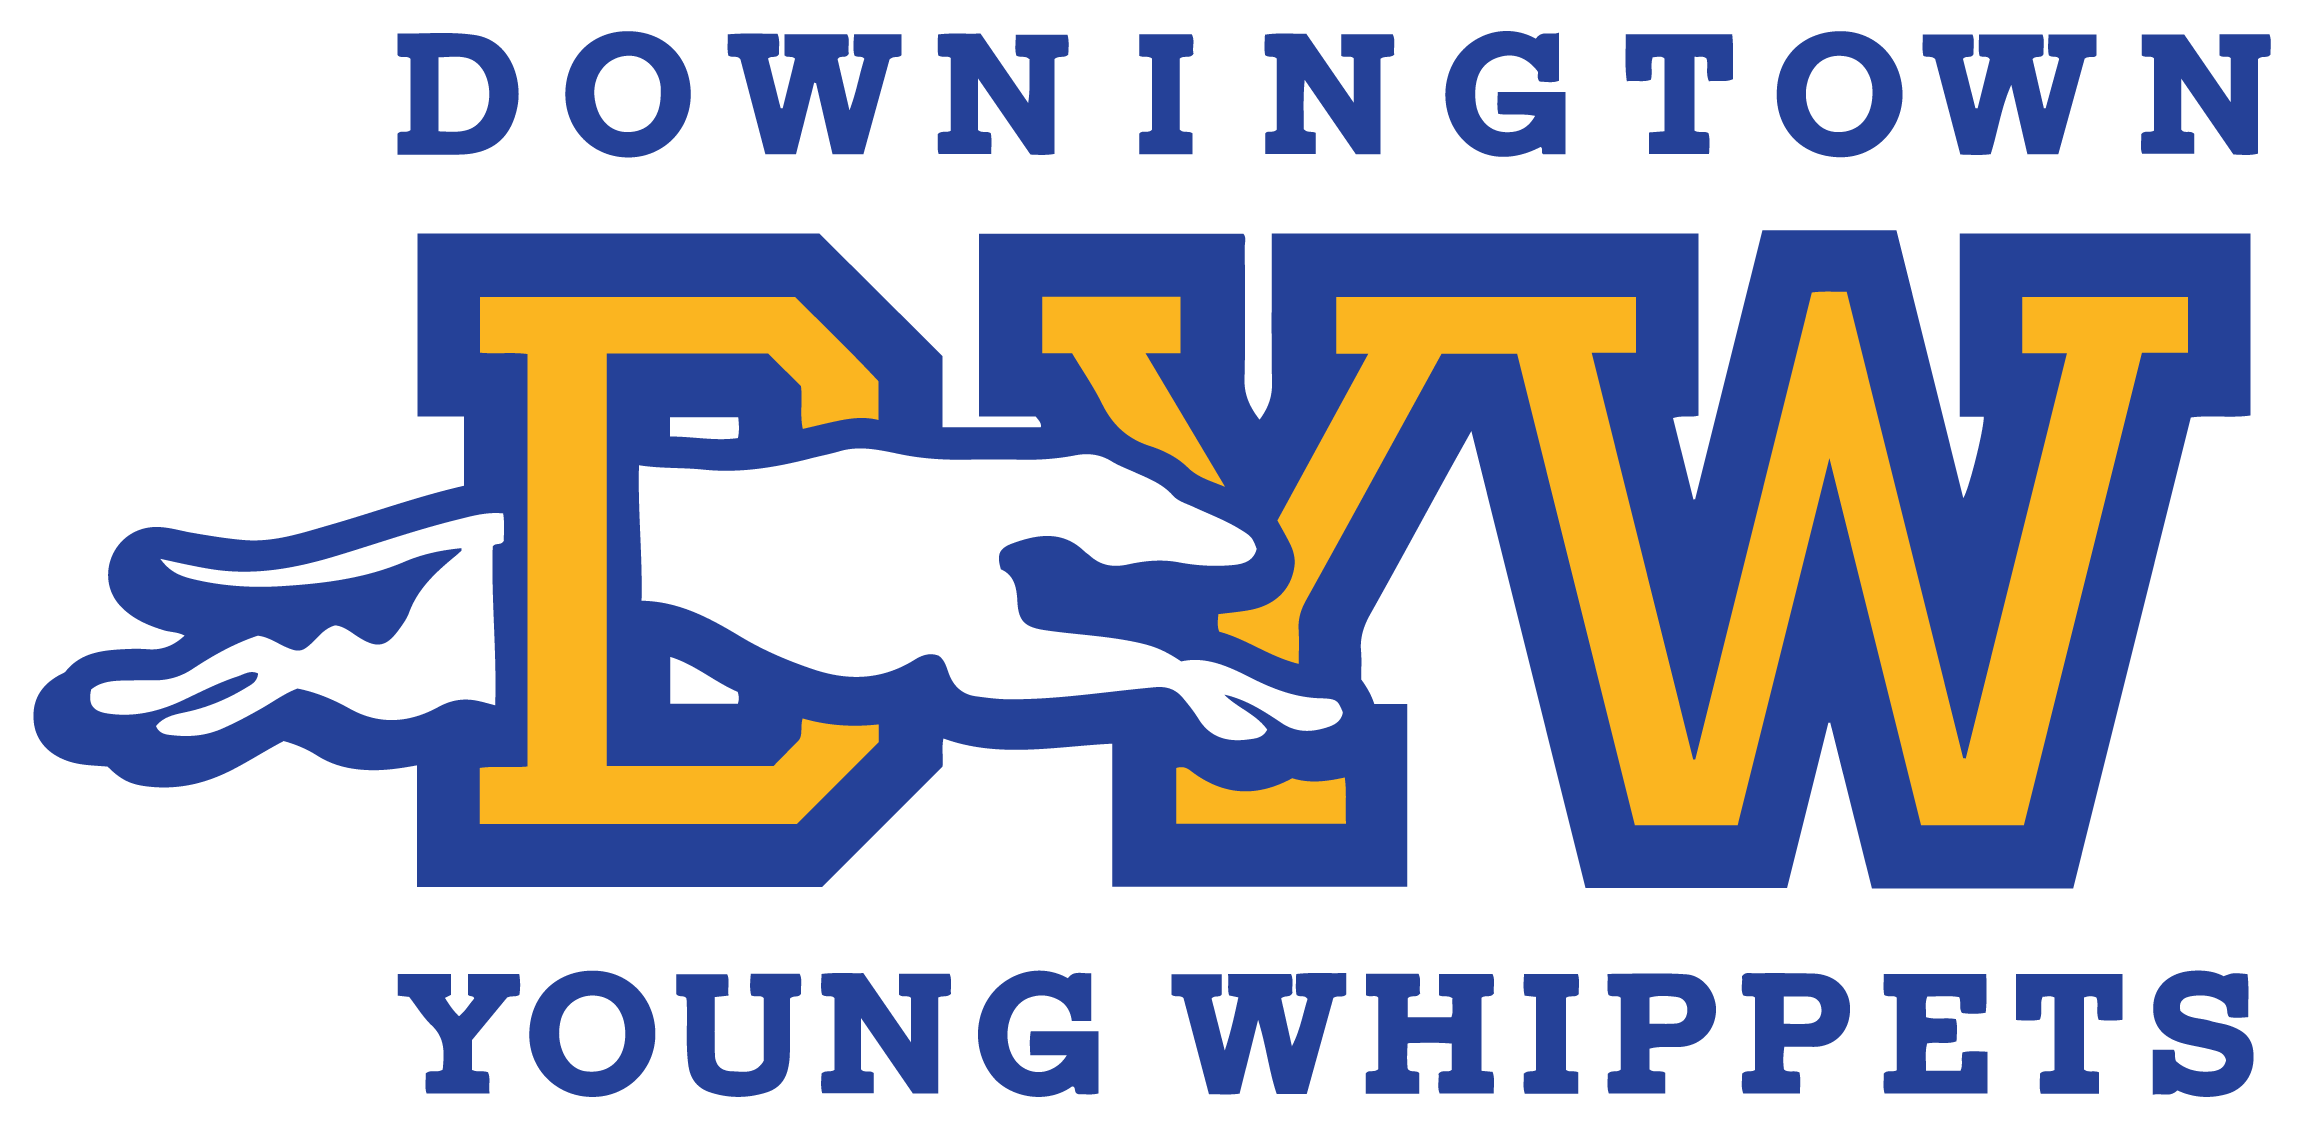 downingtownyoungwhippets